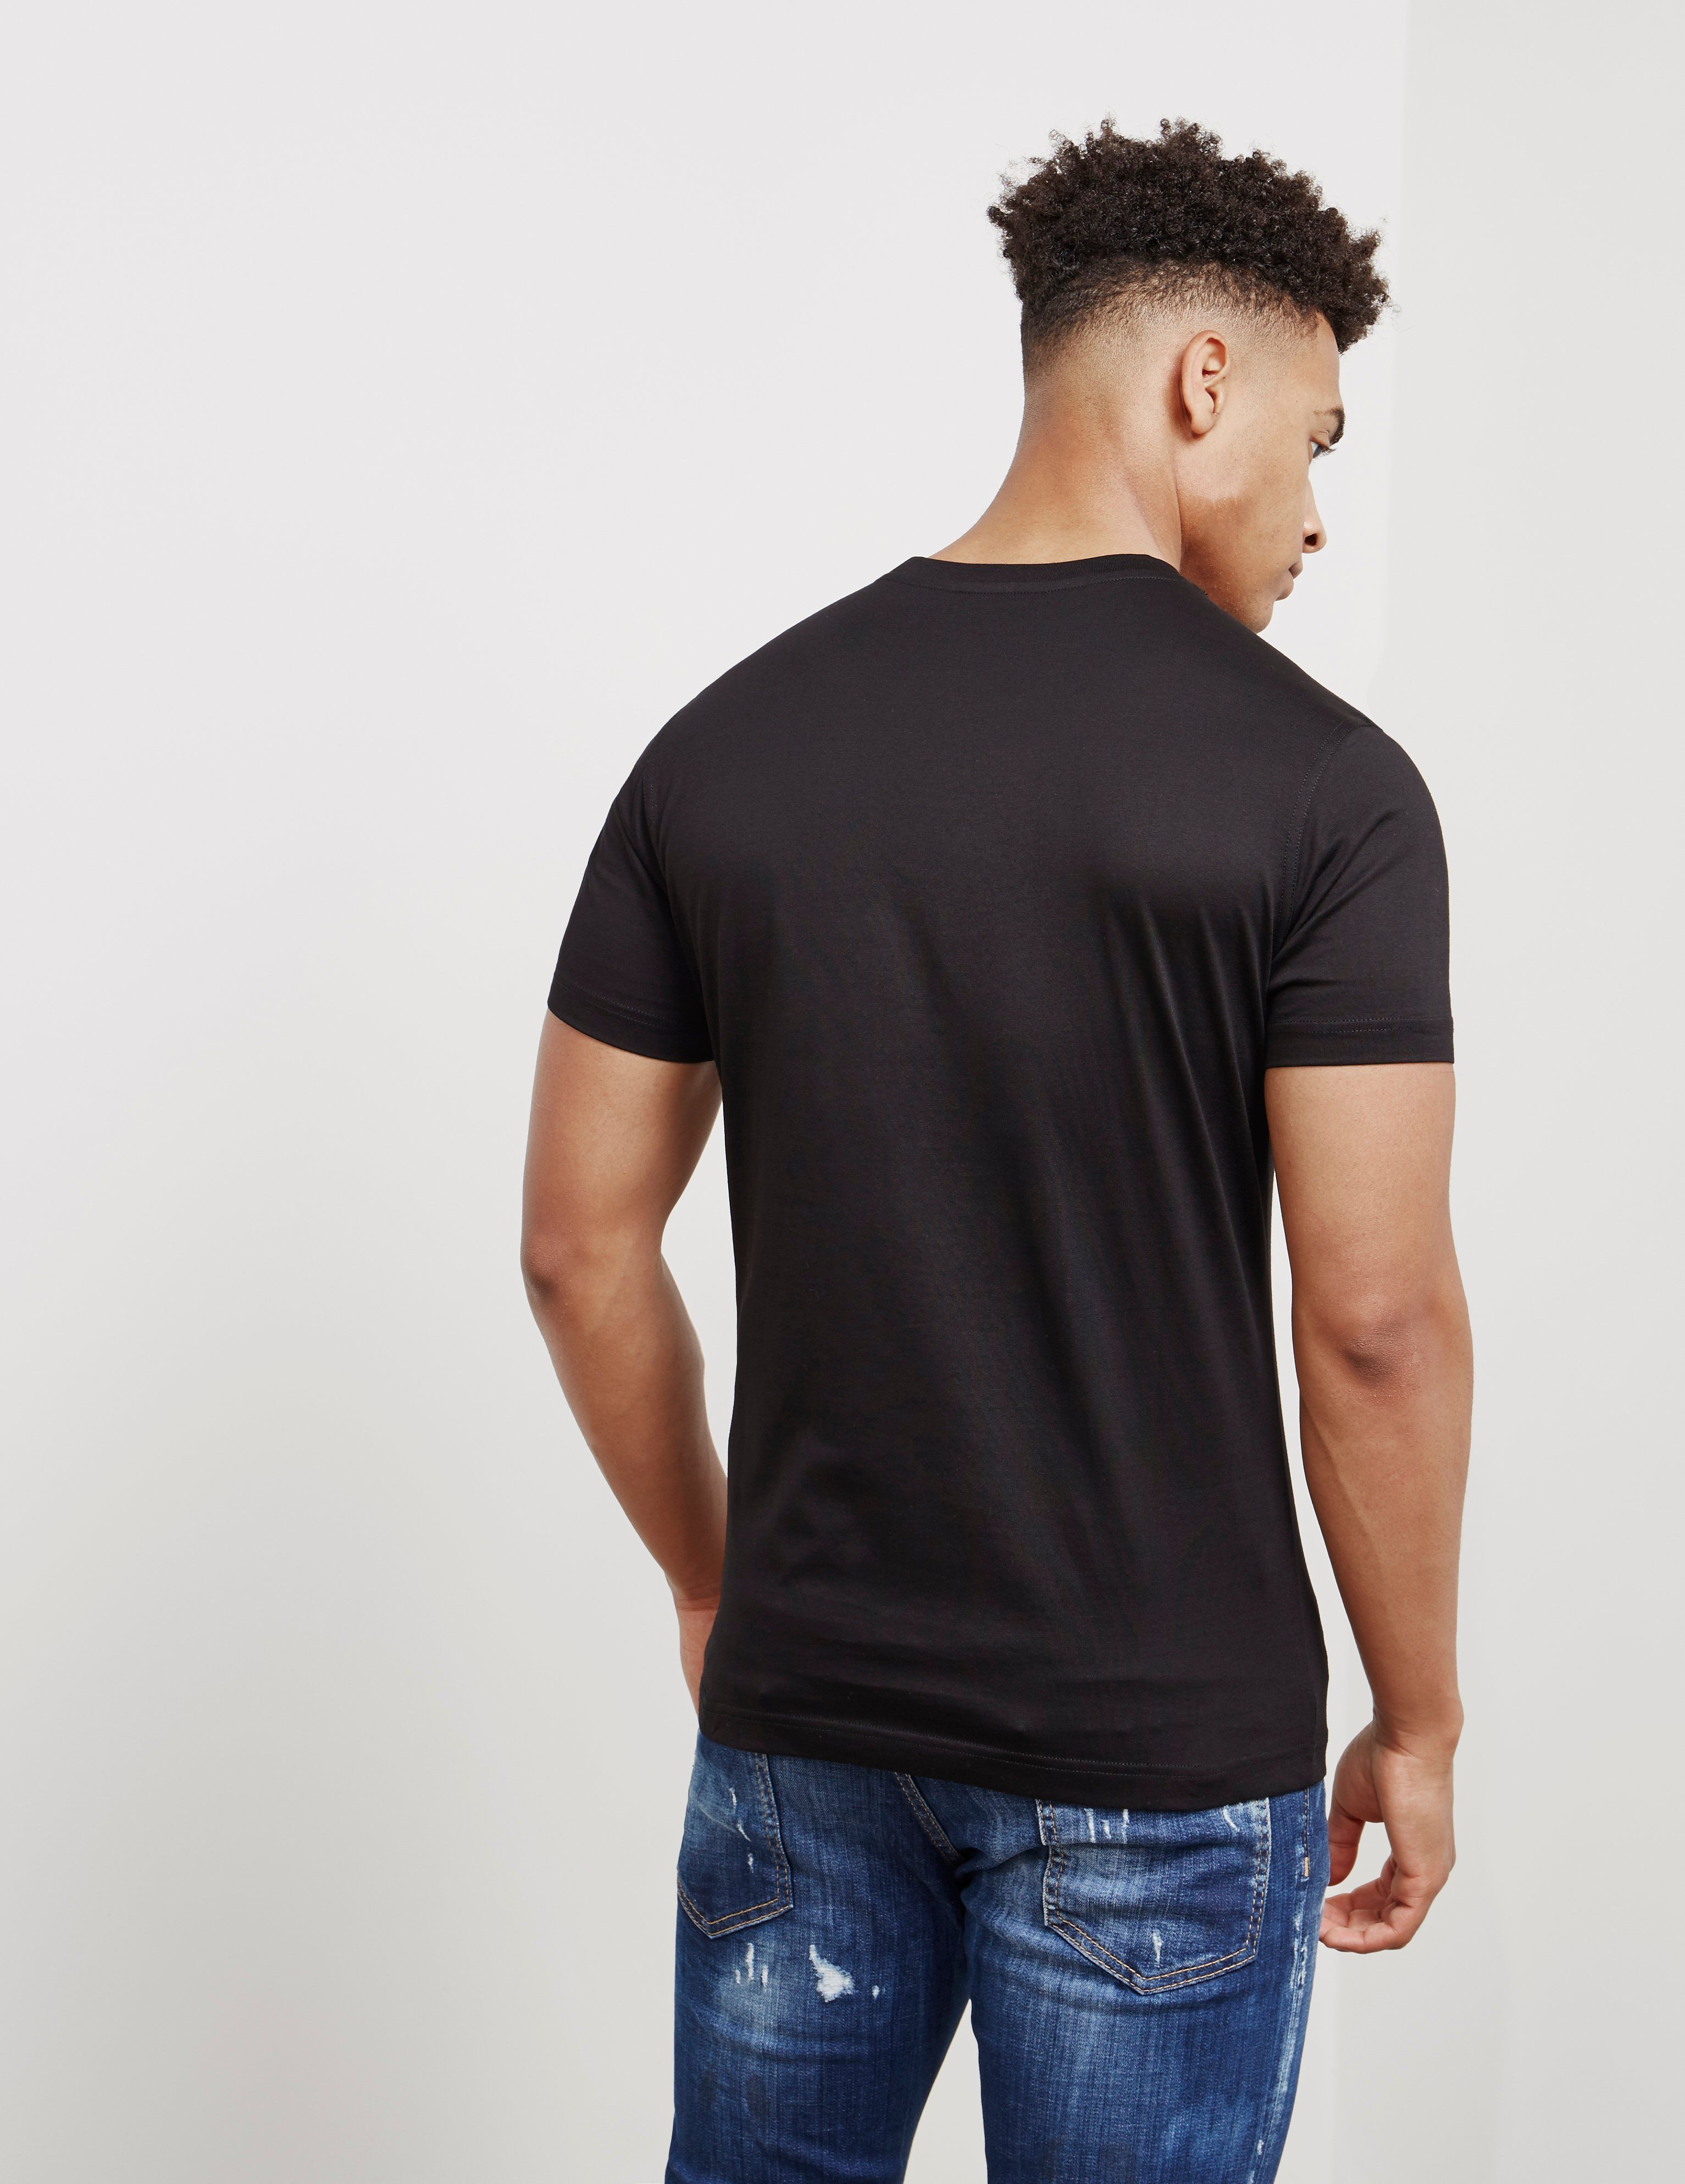 Dimoral Turtle Short Sleeve T-Shirt